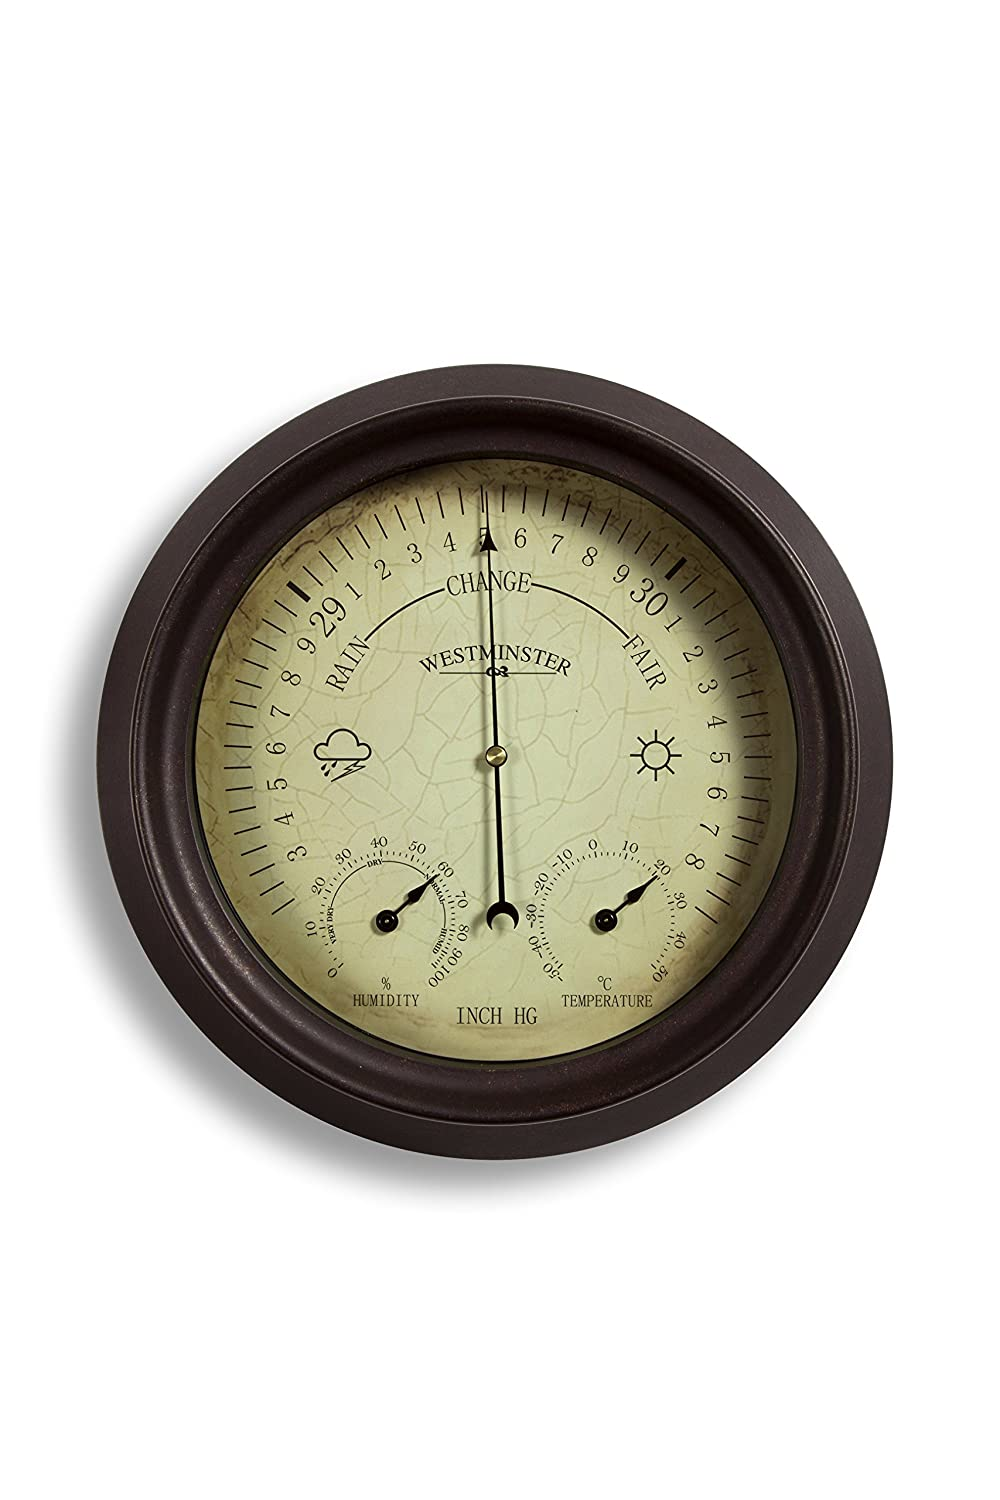 Garden outdoor Thermometer/Hygrometer/Barometer 150mm 6 inch Home and Garden Products Ltd